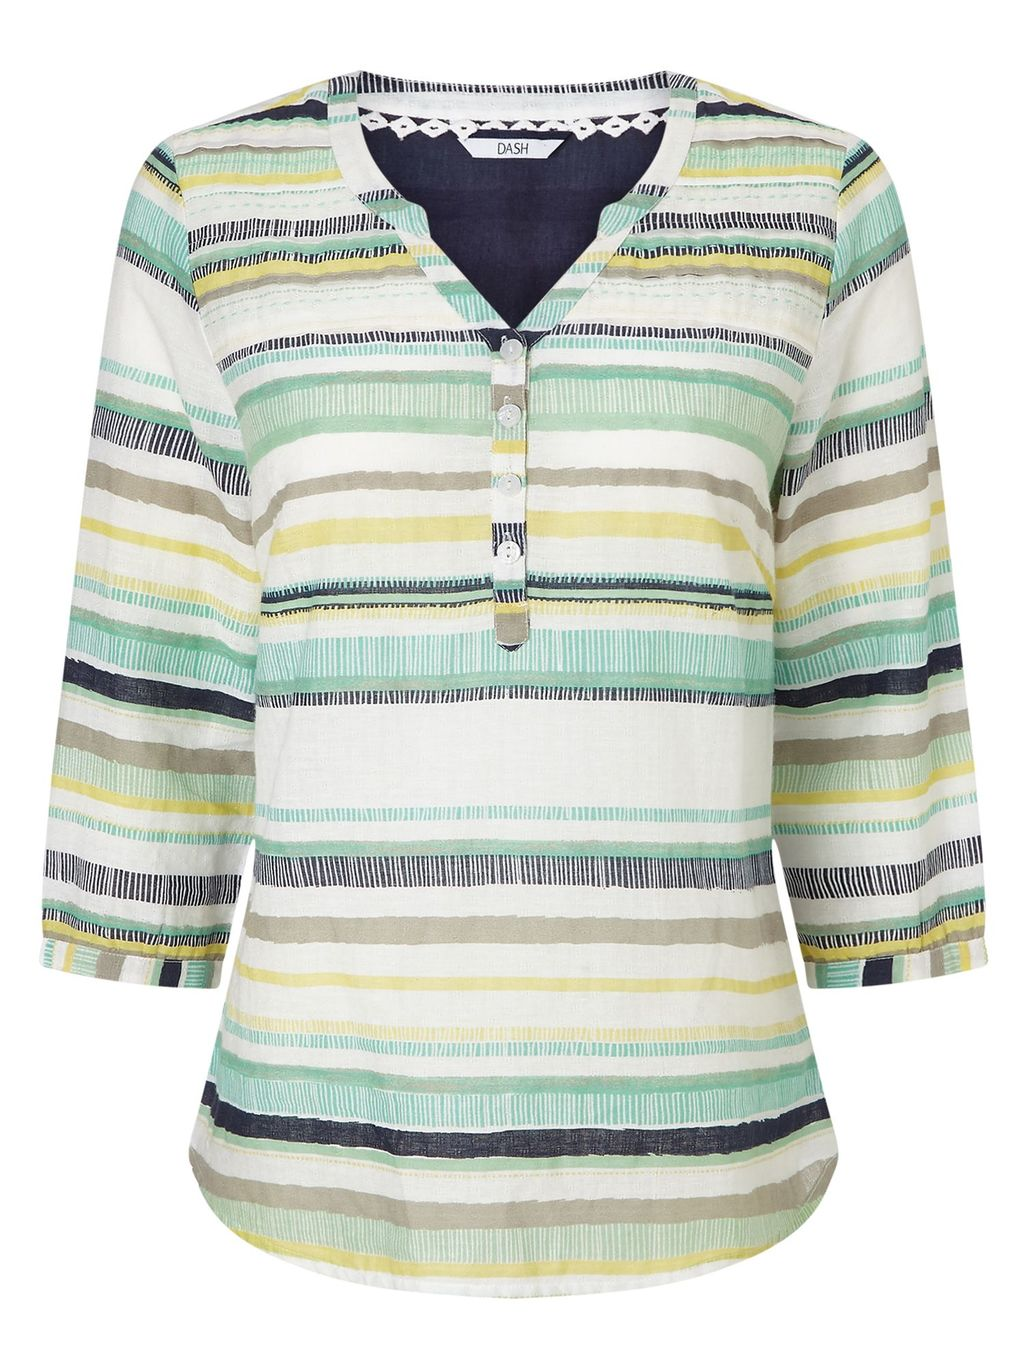 Multi Stripe Print Blouse, Multi Coloured - neckline: v-neck; pattern: horizontal stripes; predominant colour: ivory/cream; secondary colour: pistachio; occasions: casual; length: standard; style: top; fibres: cotton - stretch; fit: body skimming; sleeve length: 3/4 length; sleeve style: standard; pattern type: fabric; pattern size: light/subtle; texture group: woven light midweight; multicoloured: multicoloured; season: s/s 2016